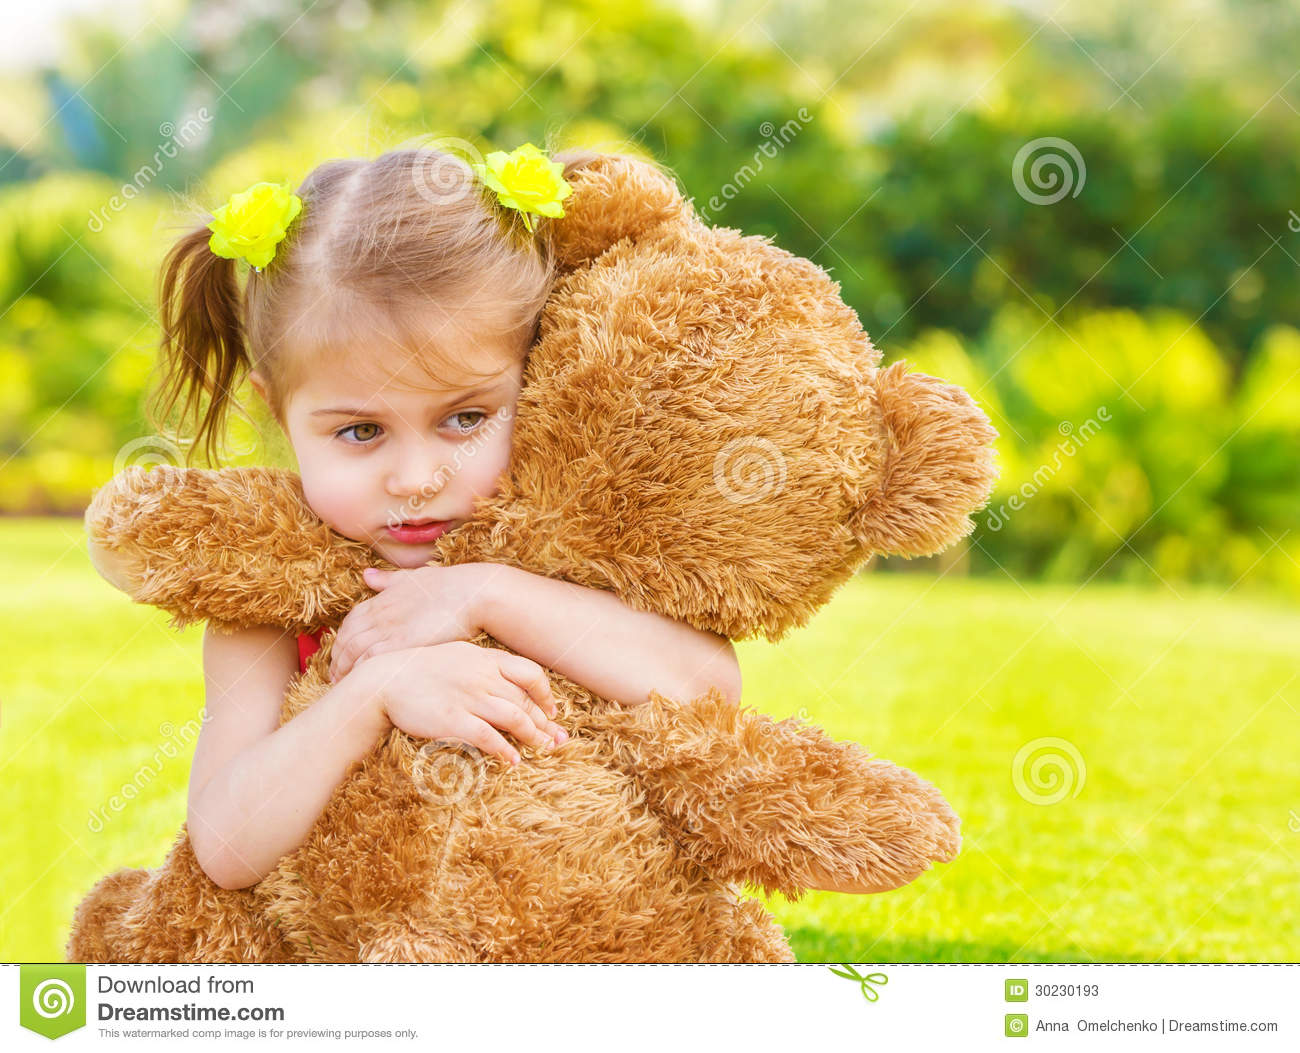 2 018 Sad Girl Teddy Bear Photos Free Royalty Free Stock Photos From Dreamstime